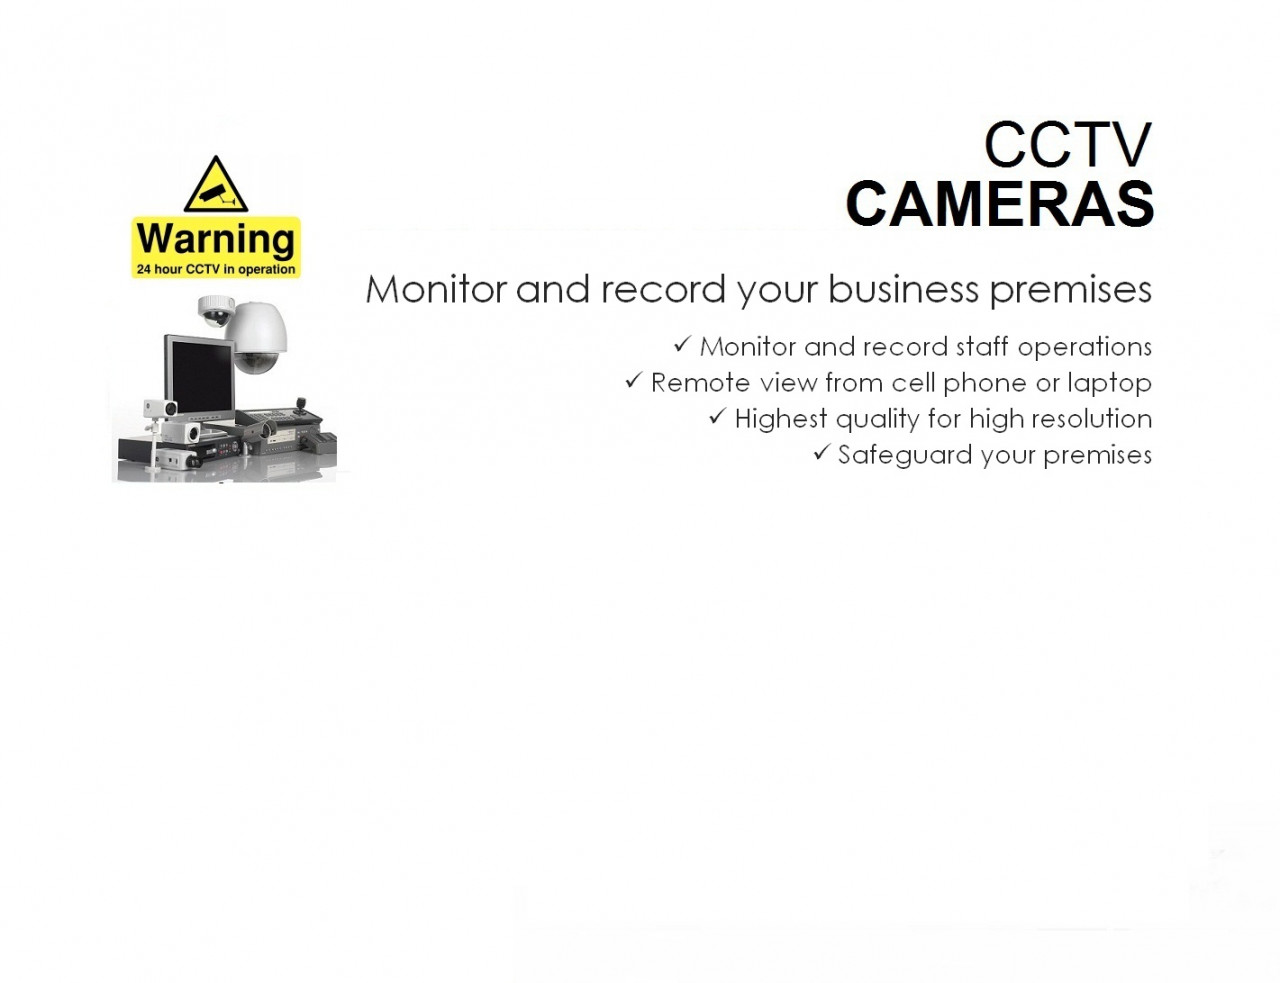 CCTV. Monitor and record your business activities.